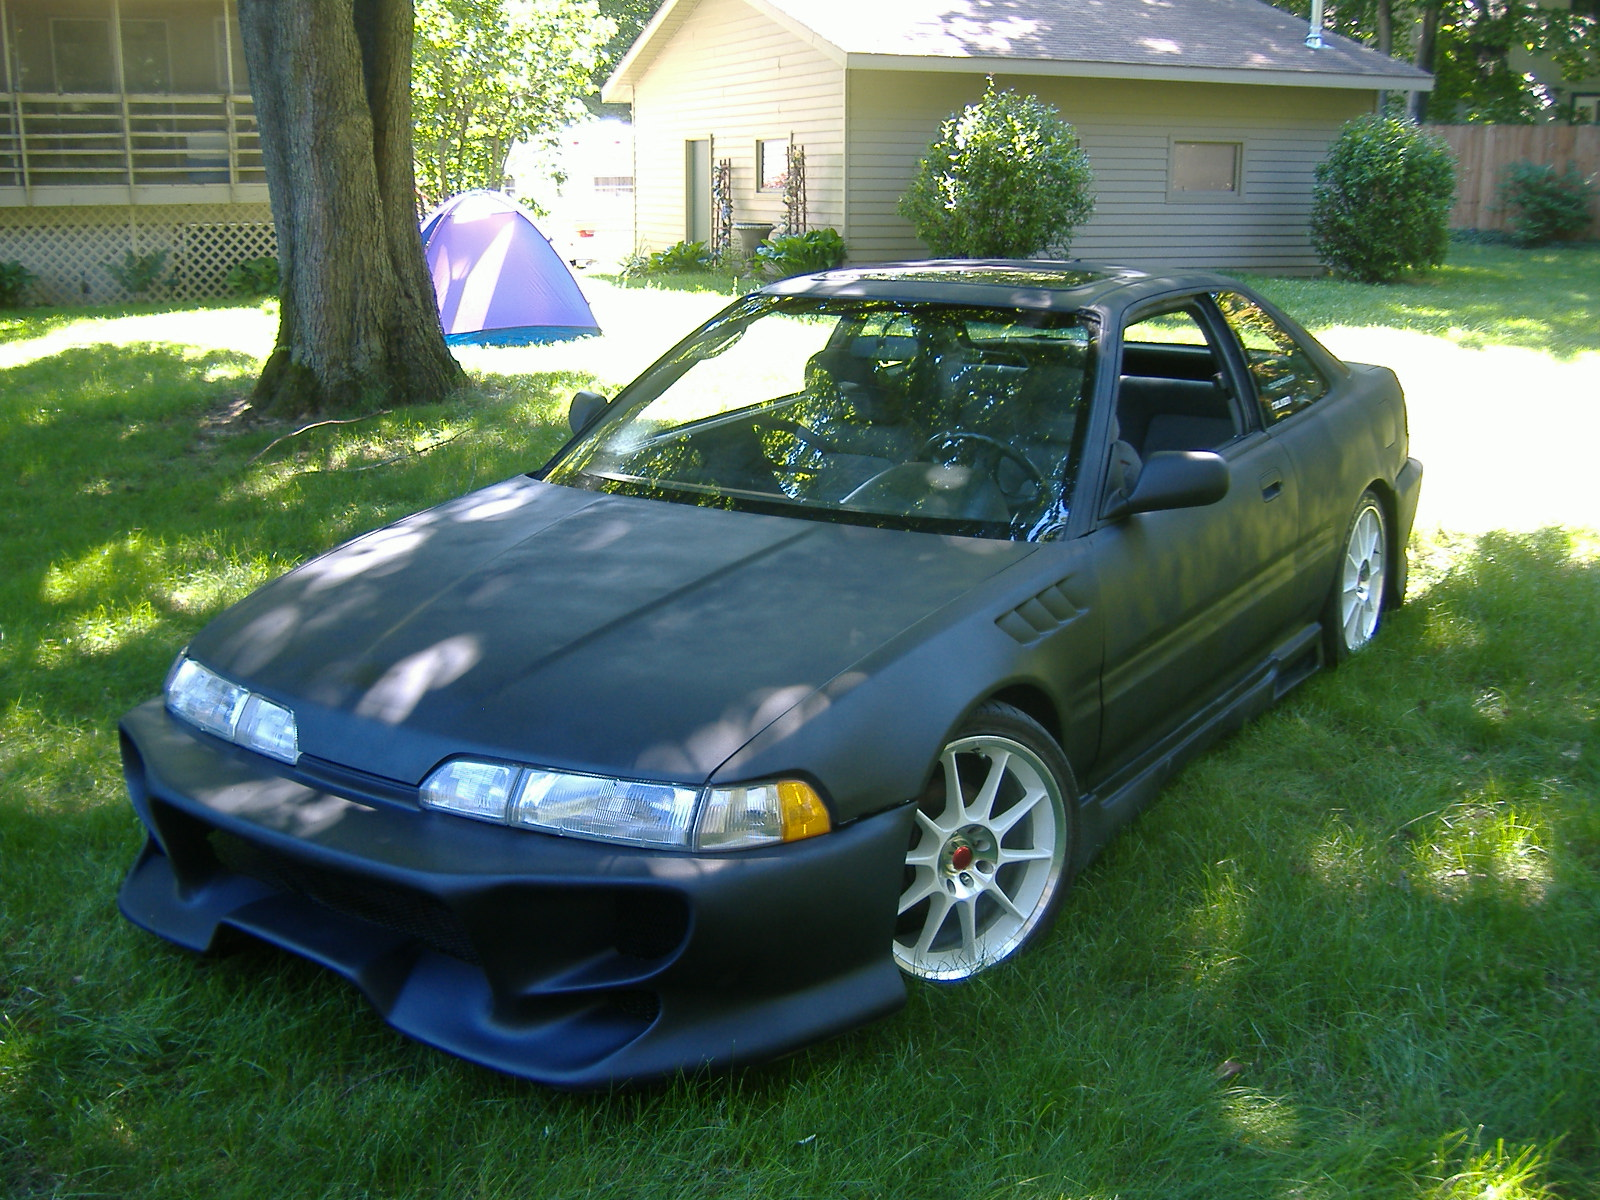 The Worlds Online Resource For Automotive Solutions Acura Integra - Body kits for acura integra